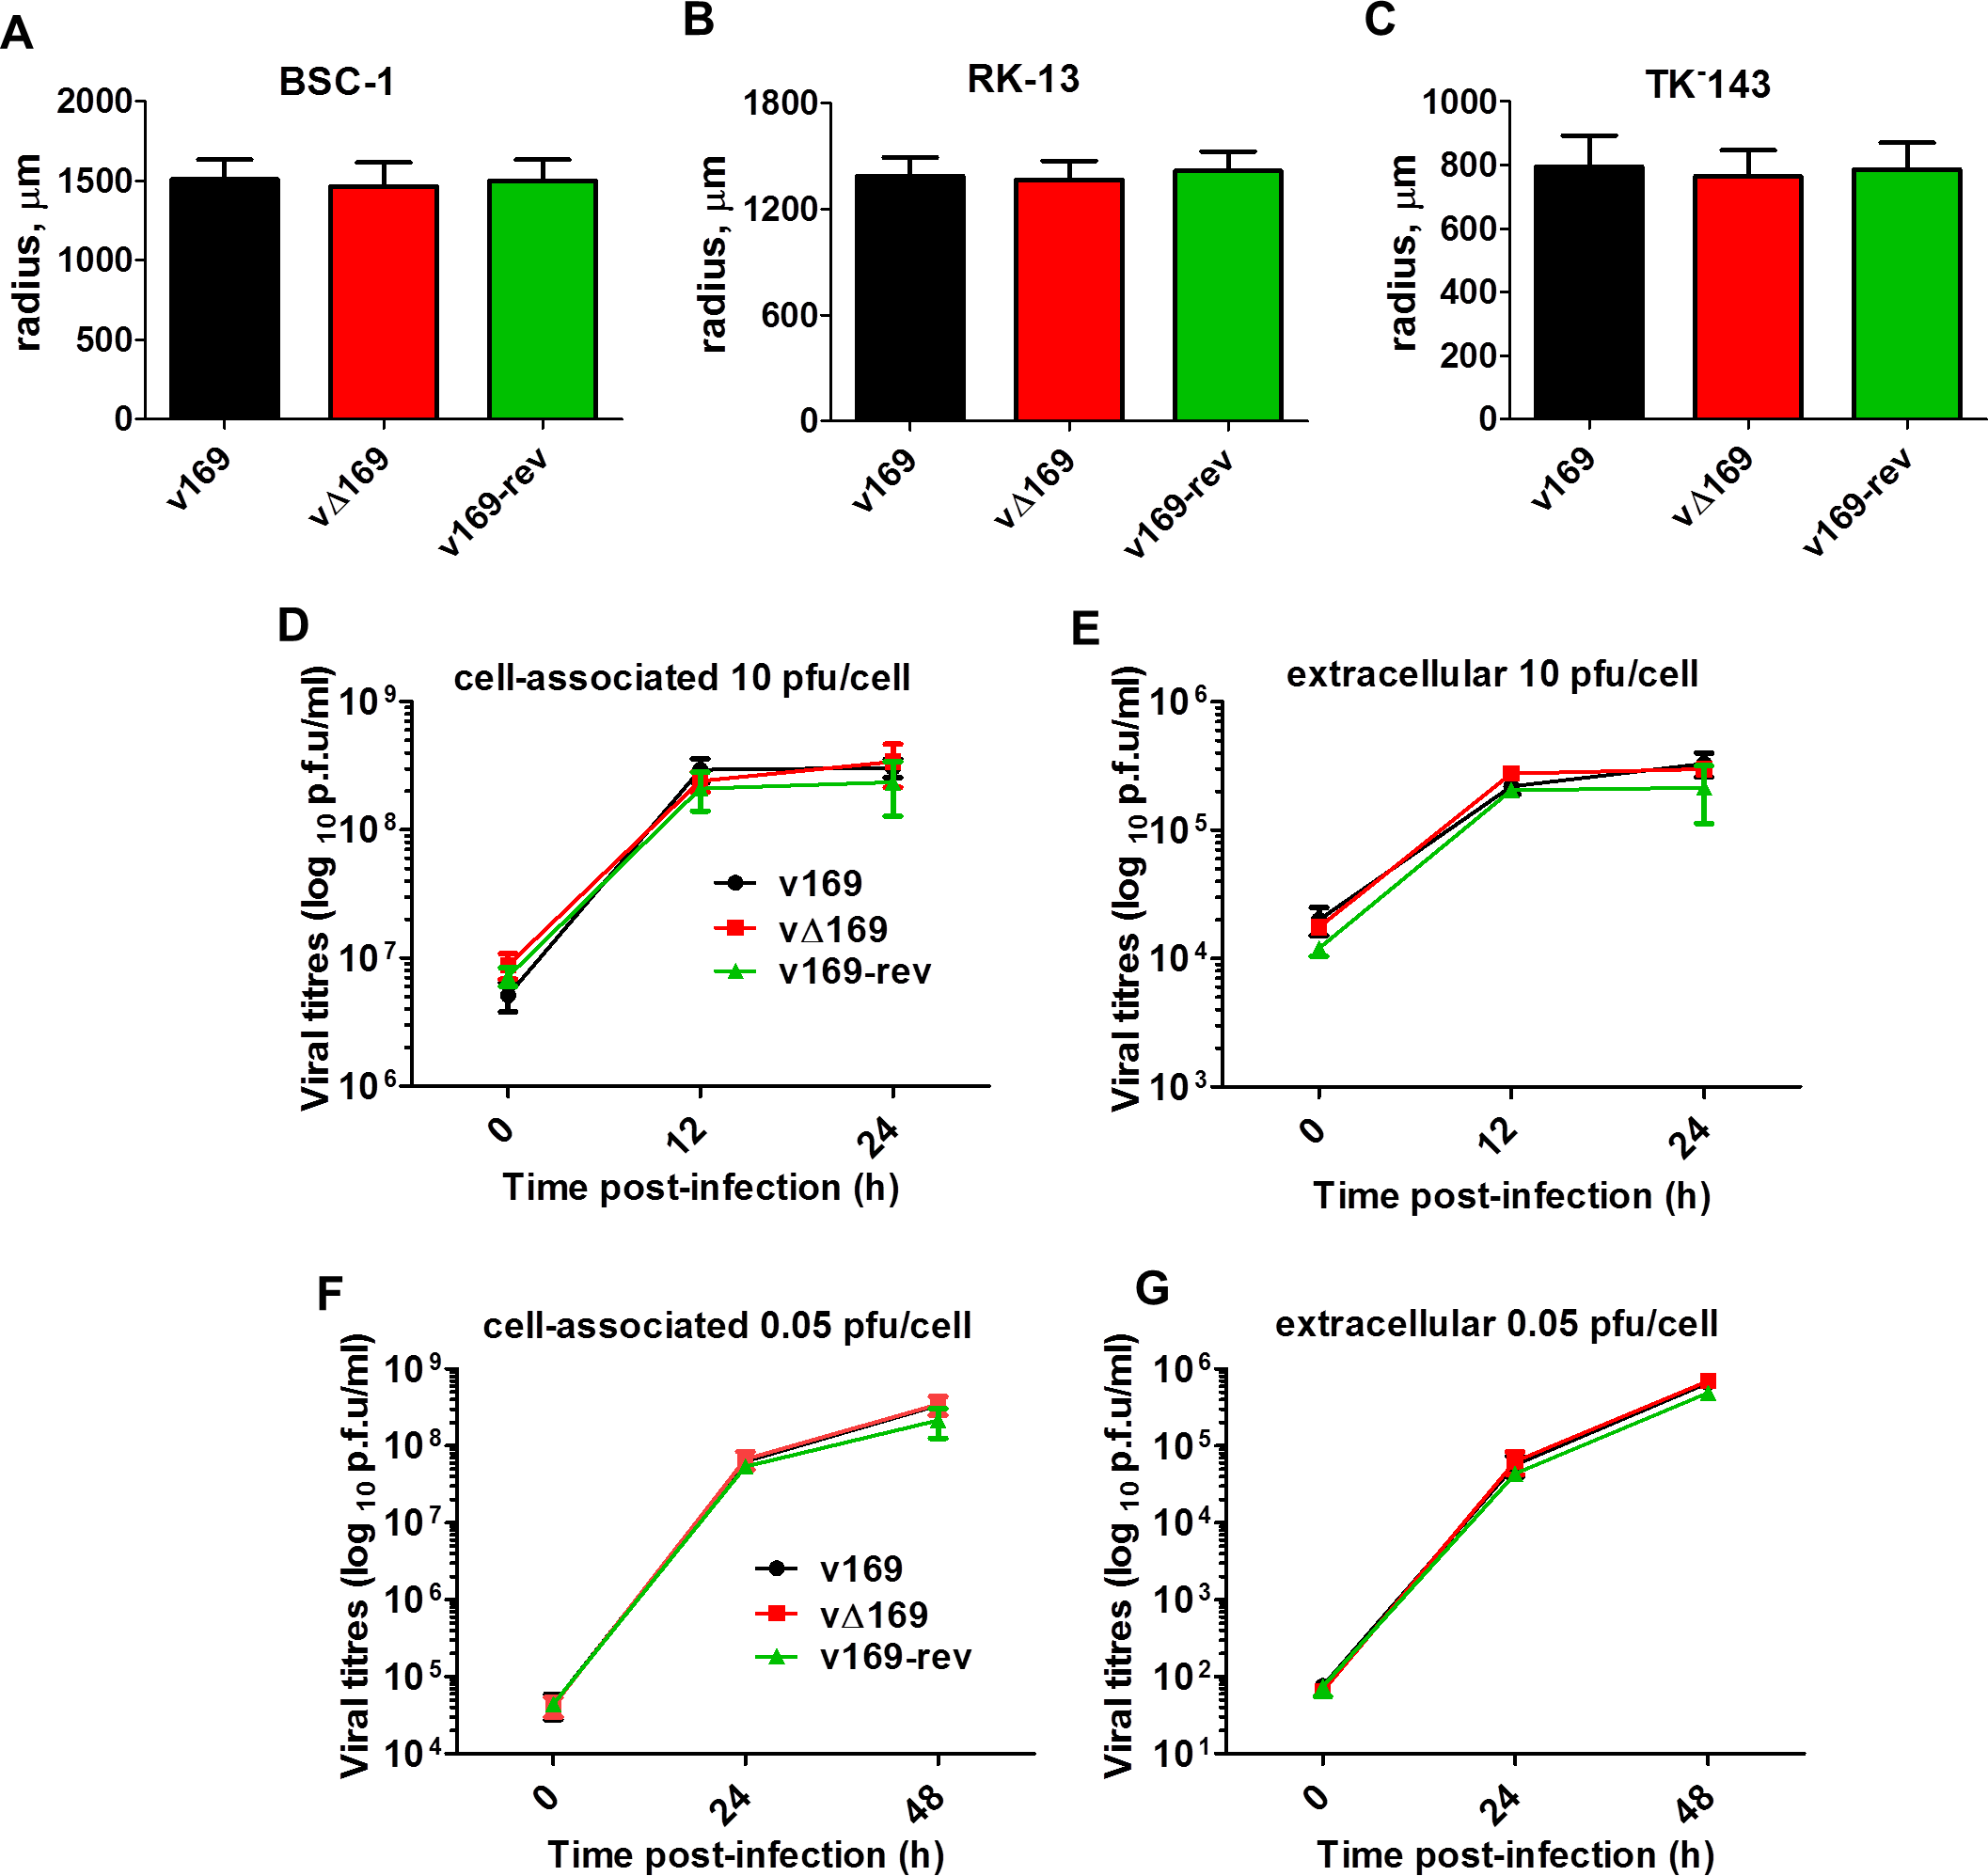 Protein 169 does not affect virus replication or spread <i>in vitro</i>.